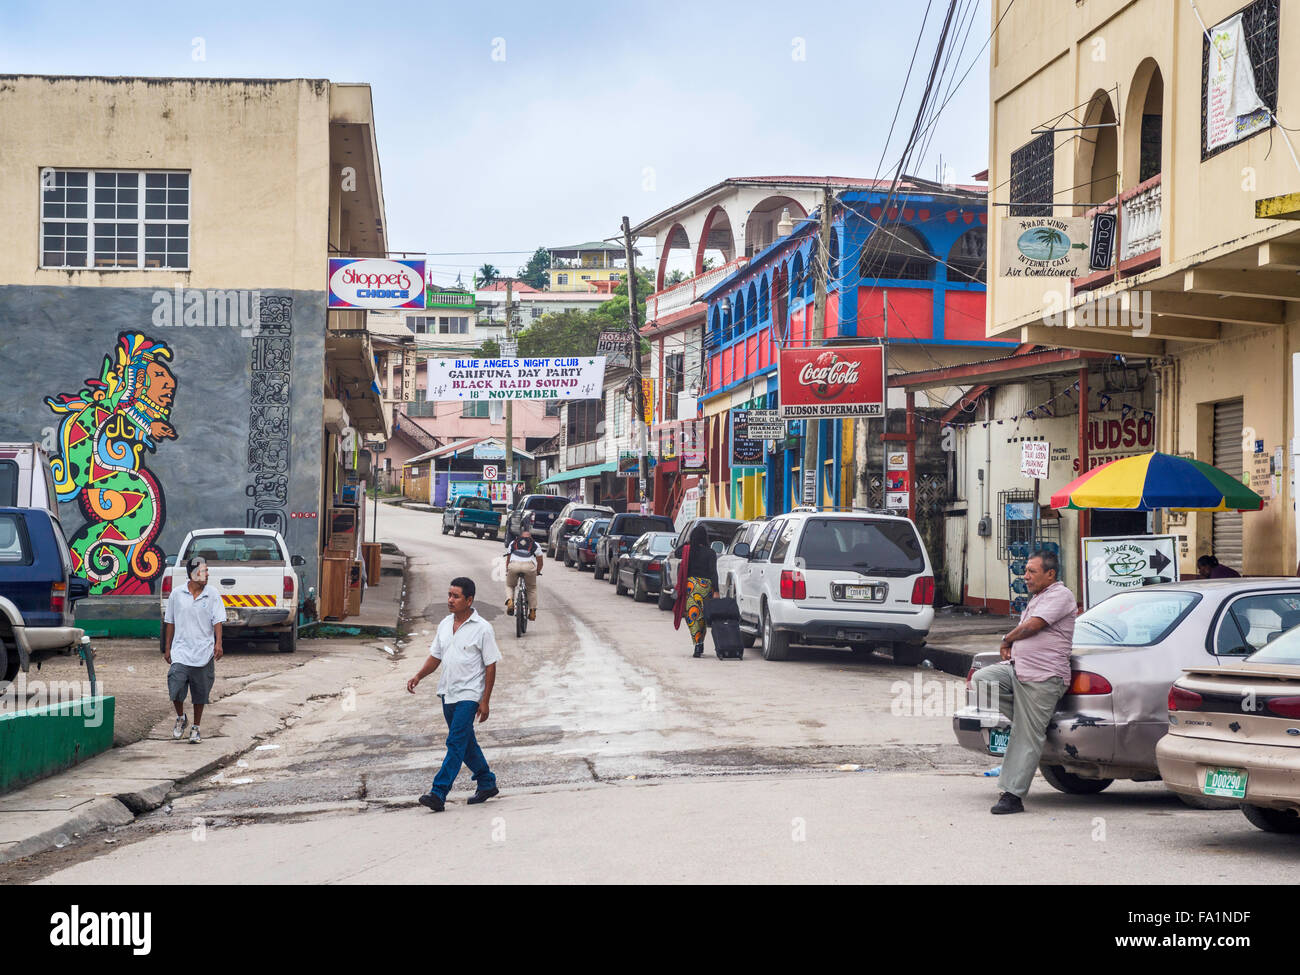 Hudson Street in San Ignacio, Cayo District, Belize, Central America - Stock Image